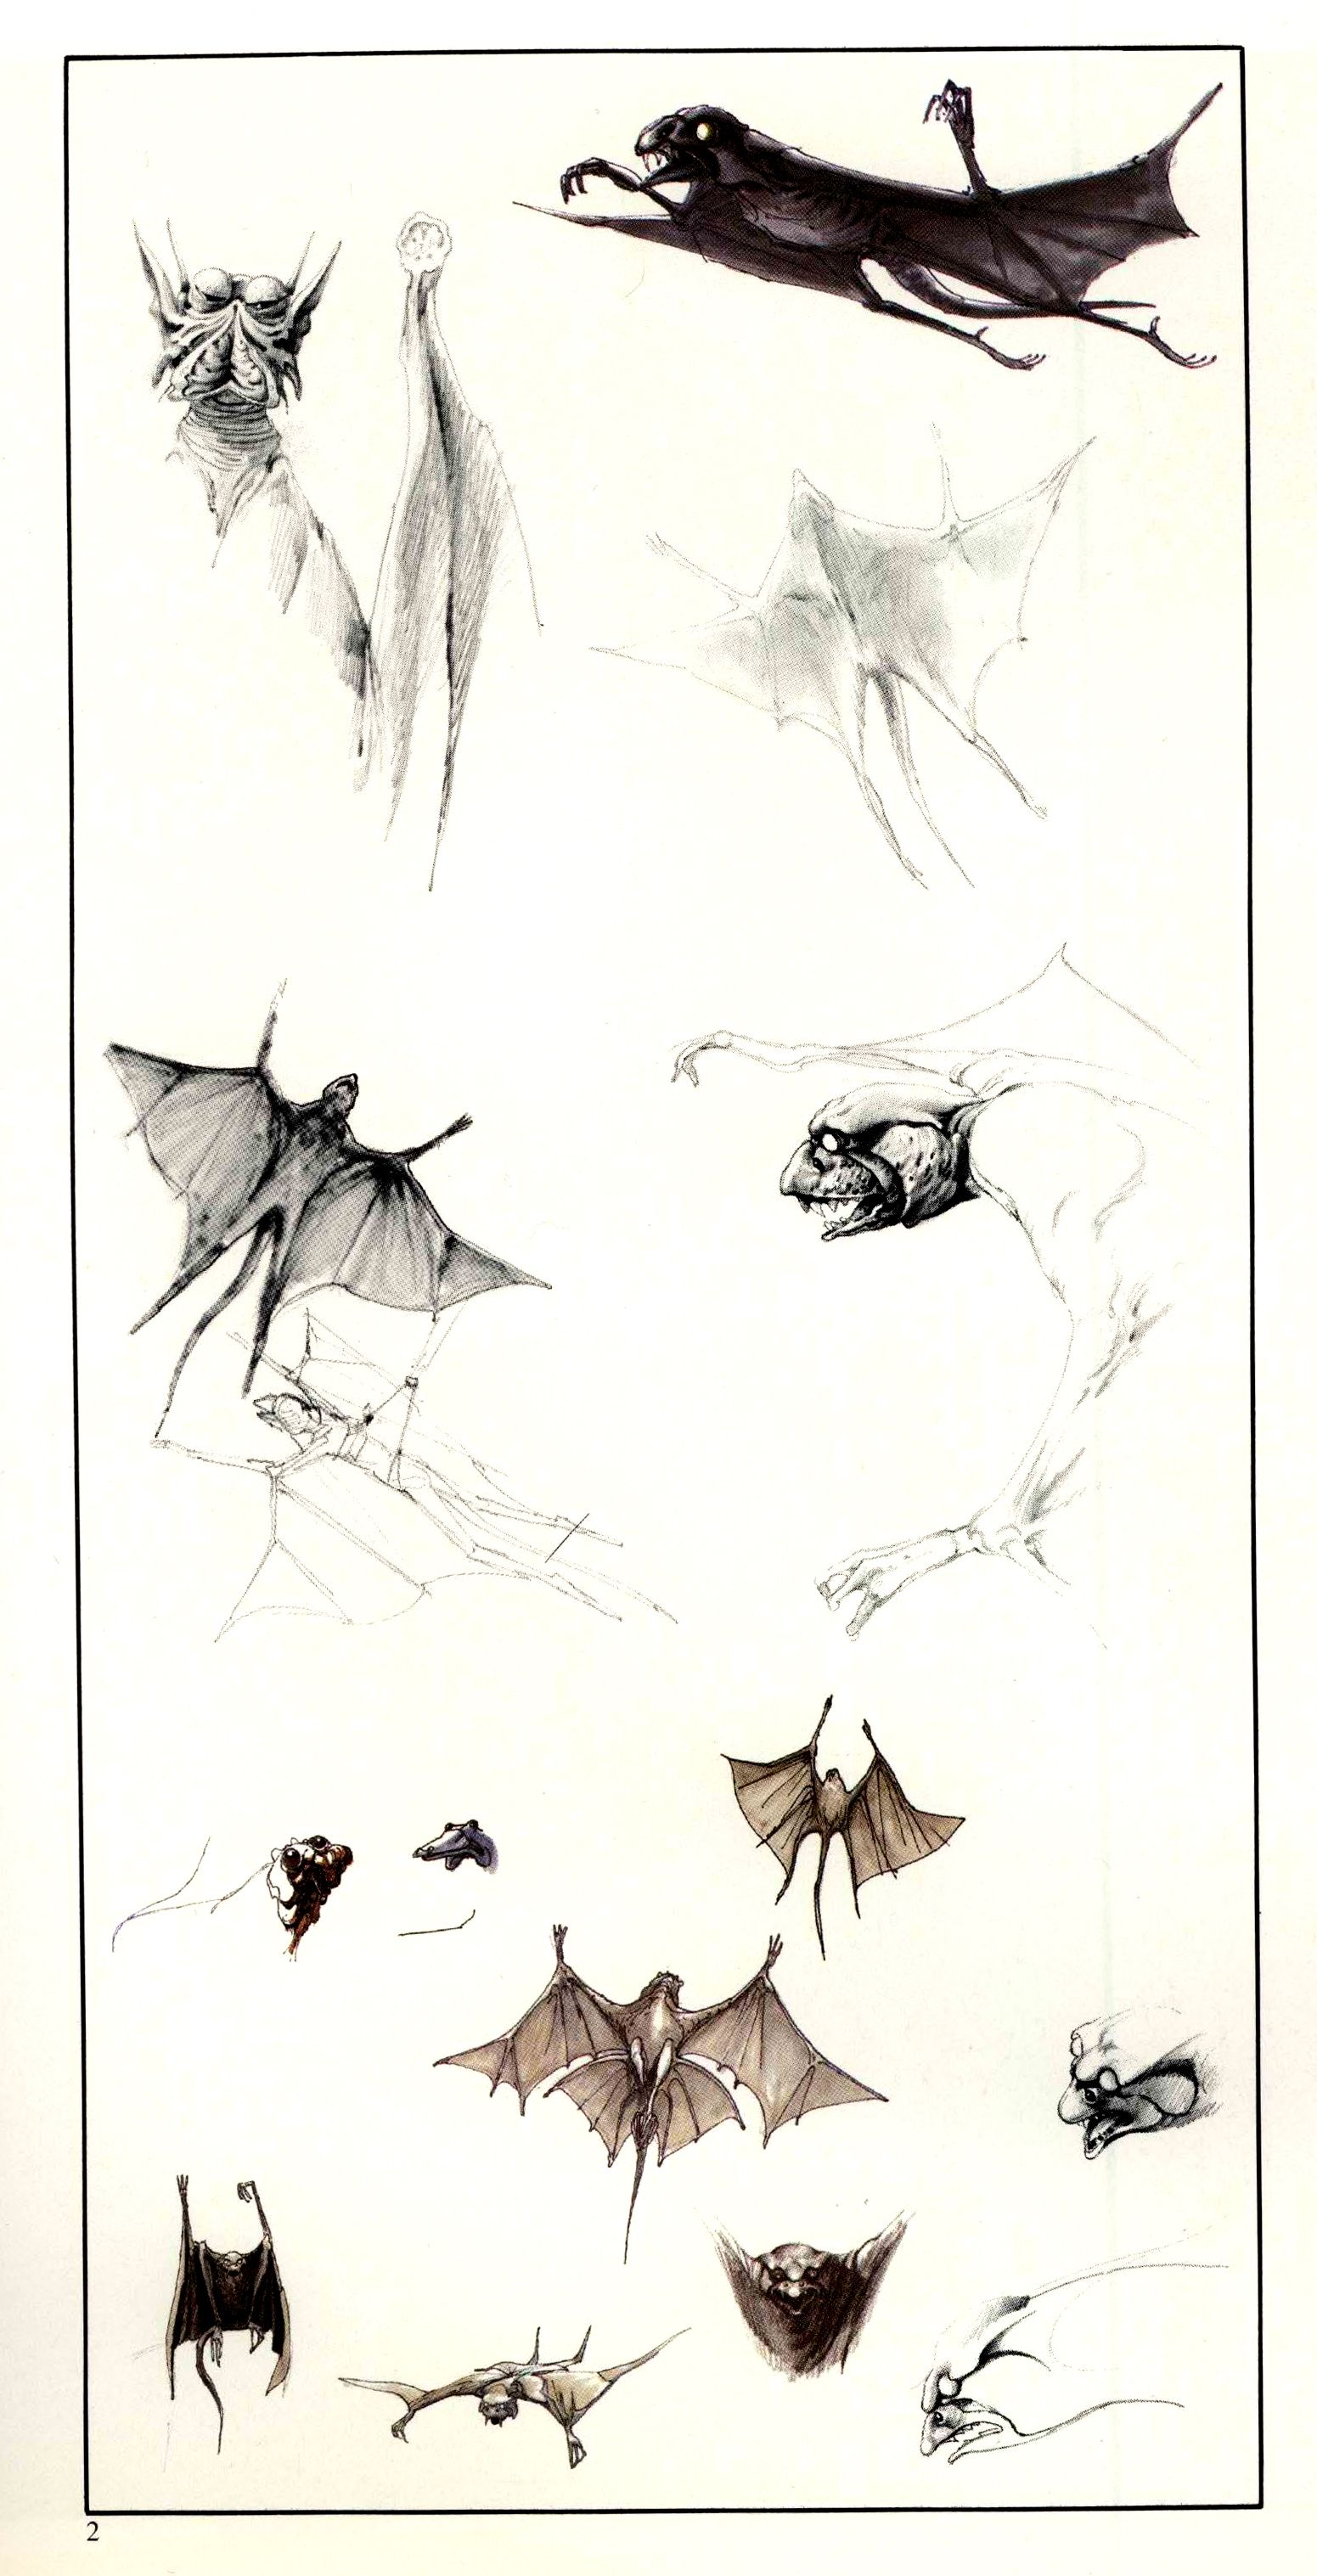 TESB: Ralph McQuarrie sketches of the bat-like creatures call MYNOCKS. Apparently, Mynocks were able to live in the vacuum of space --- but I'm not really sure how wings are supposed to work if there's no air.